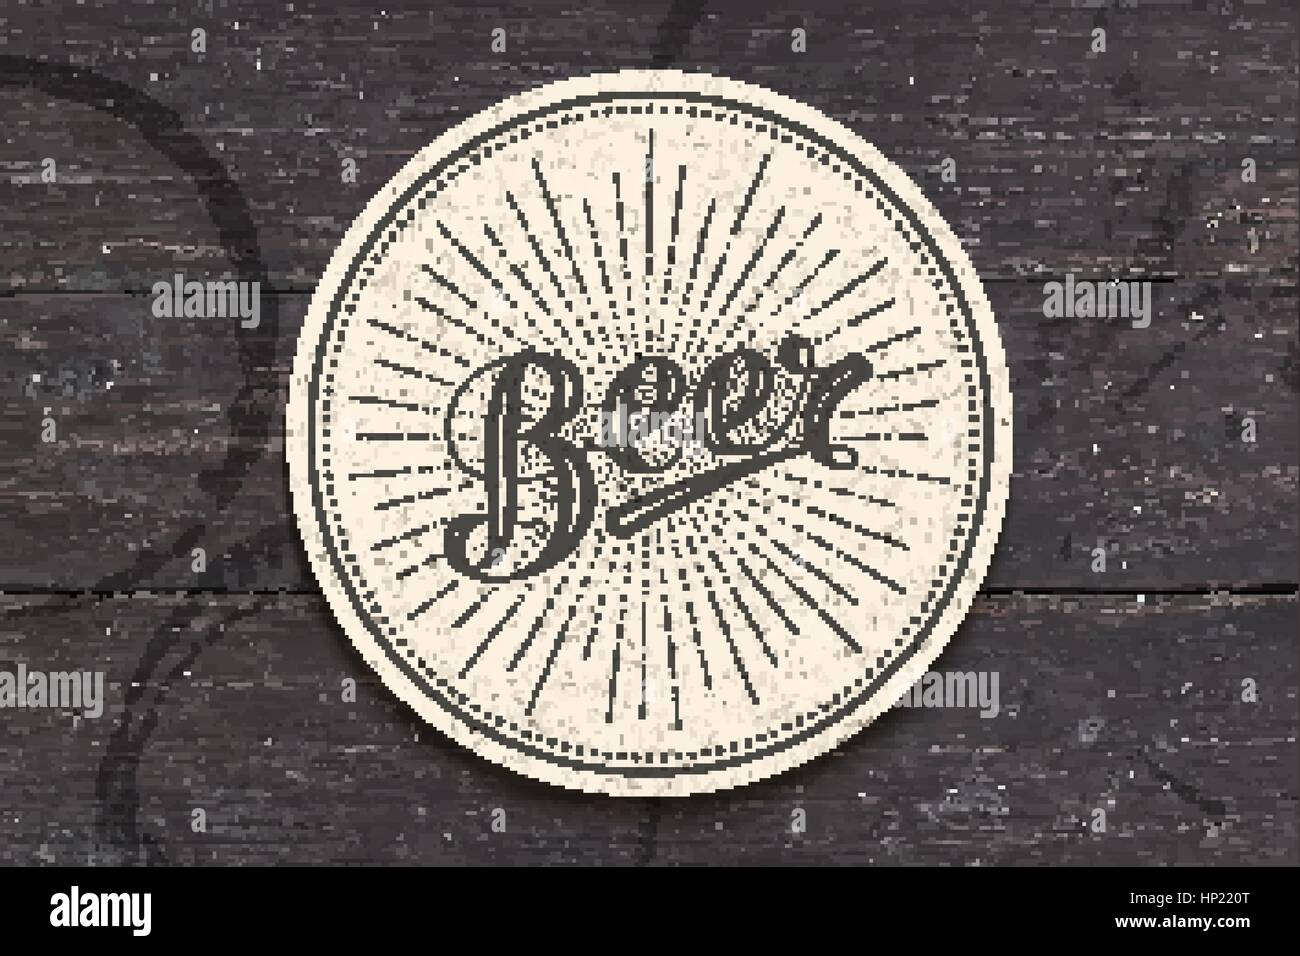 Coaster with hand drawn lettering Beer - Stock Image